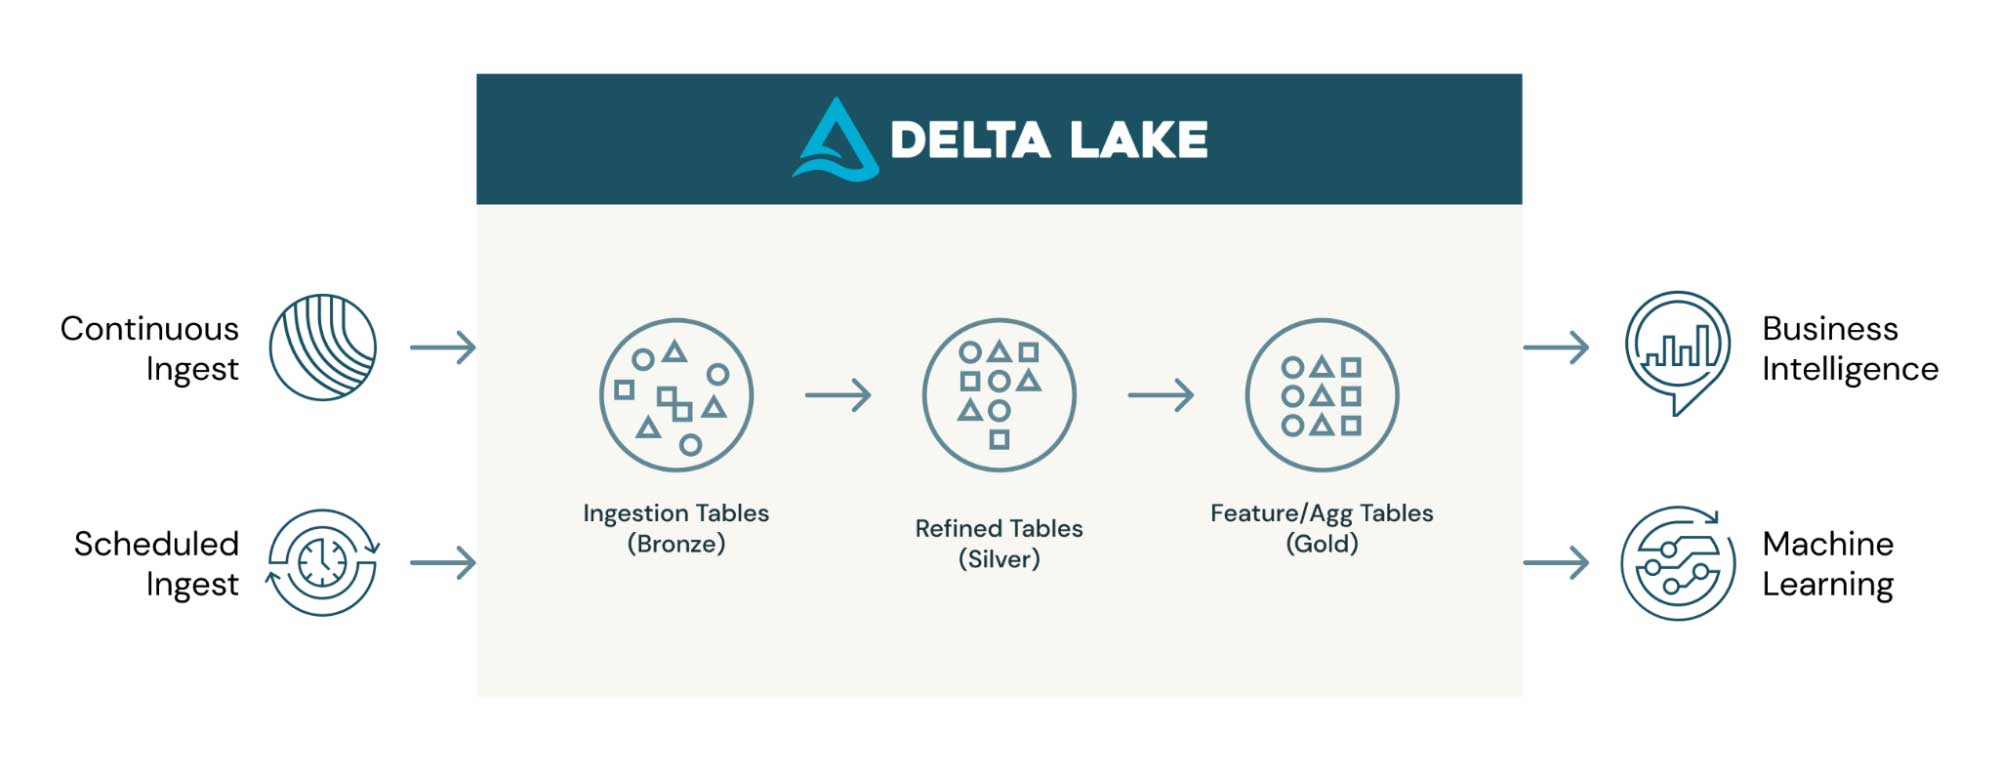 With Delta Lake you can incrementally ingest data continuously or with a scheduled job.